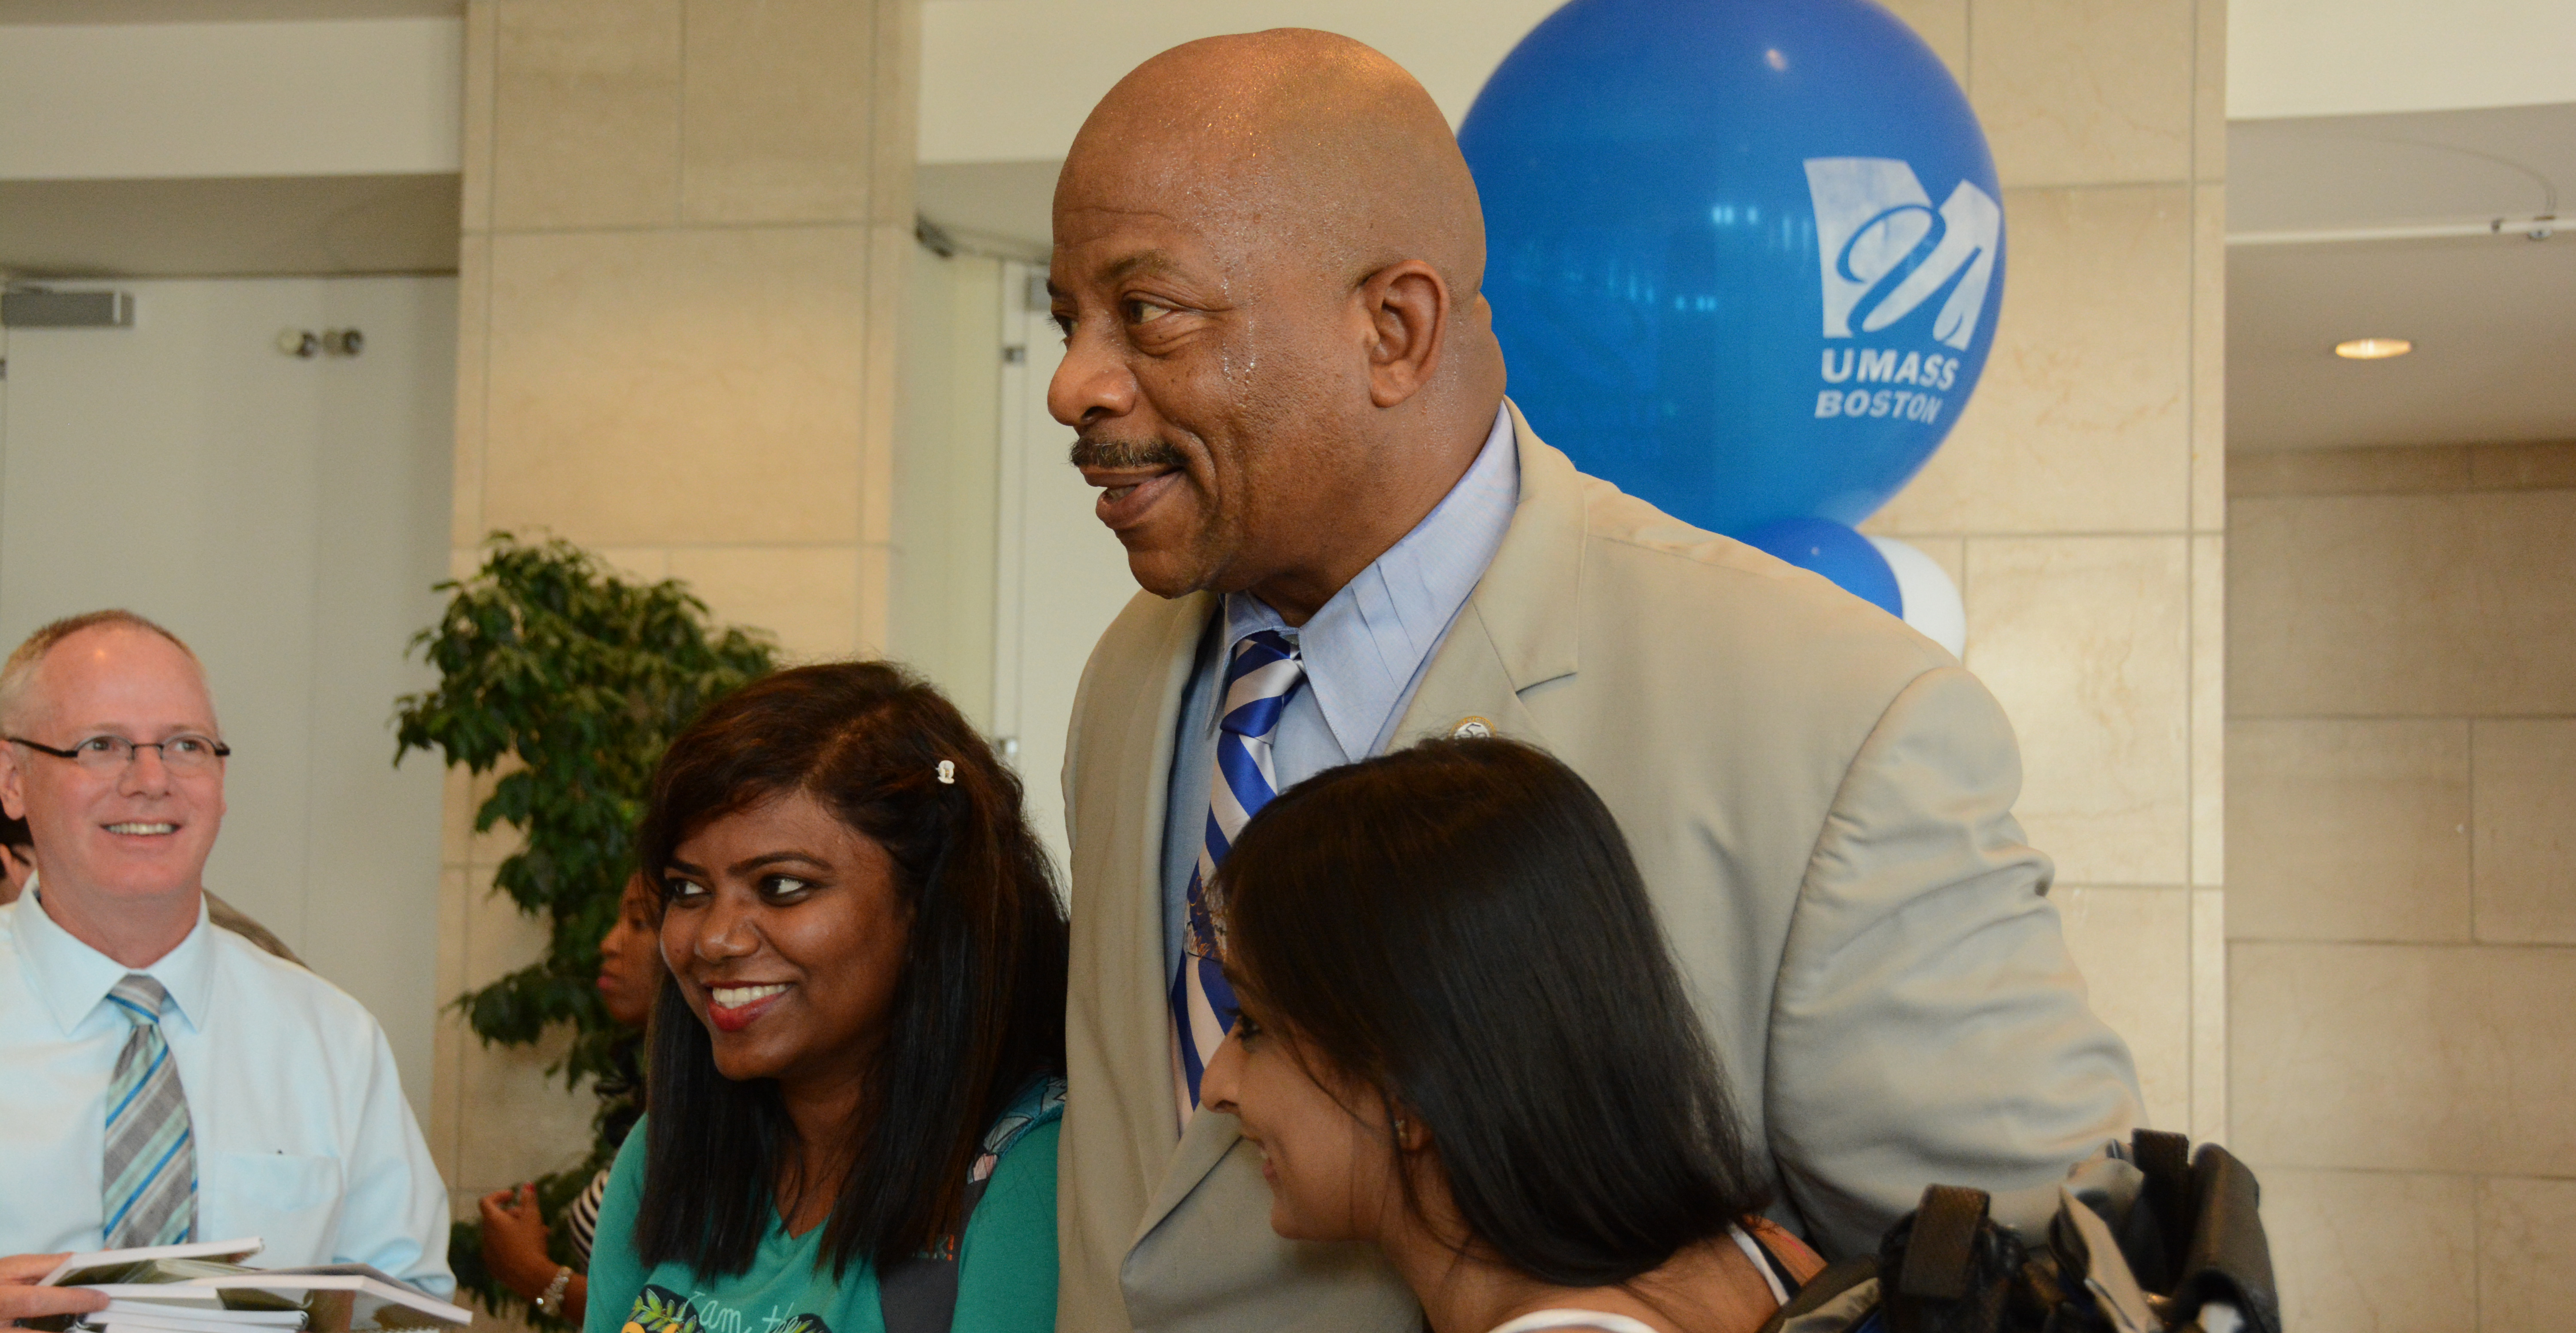 Chancellor J. Keith Motley poses for a selfie with two students.